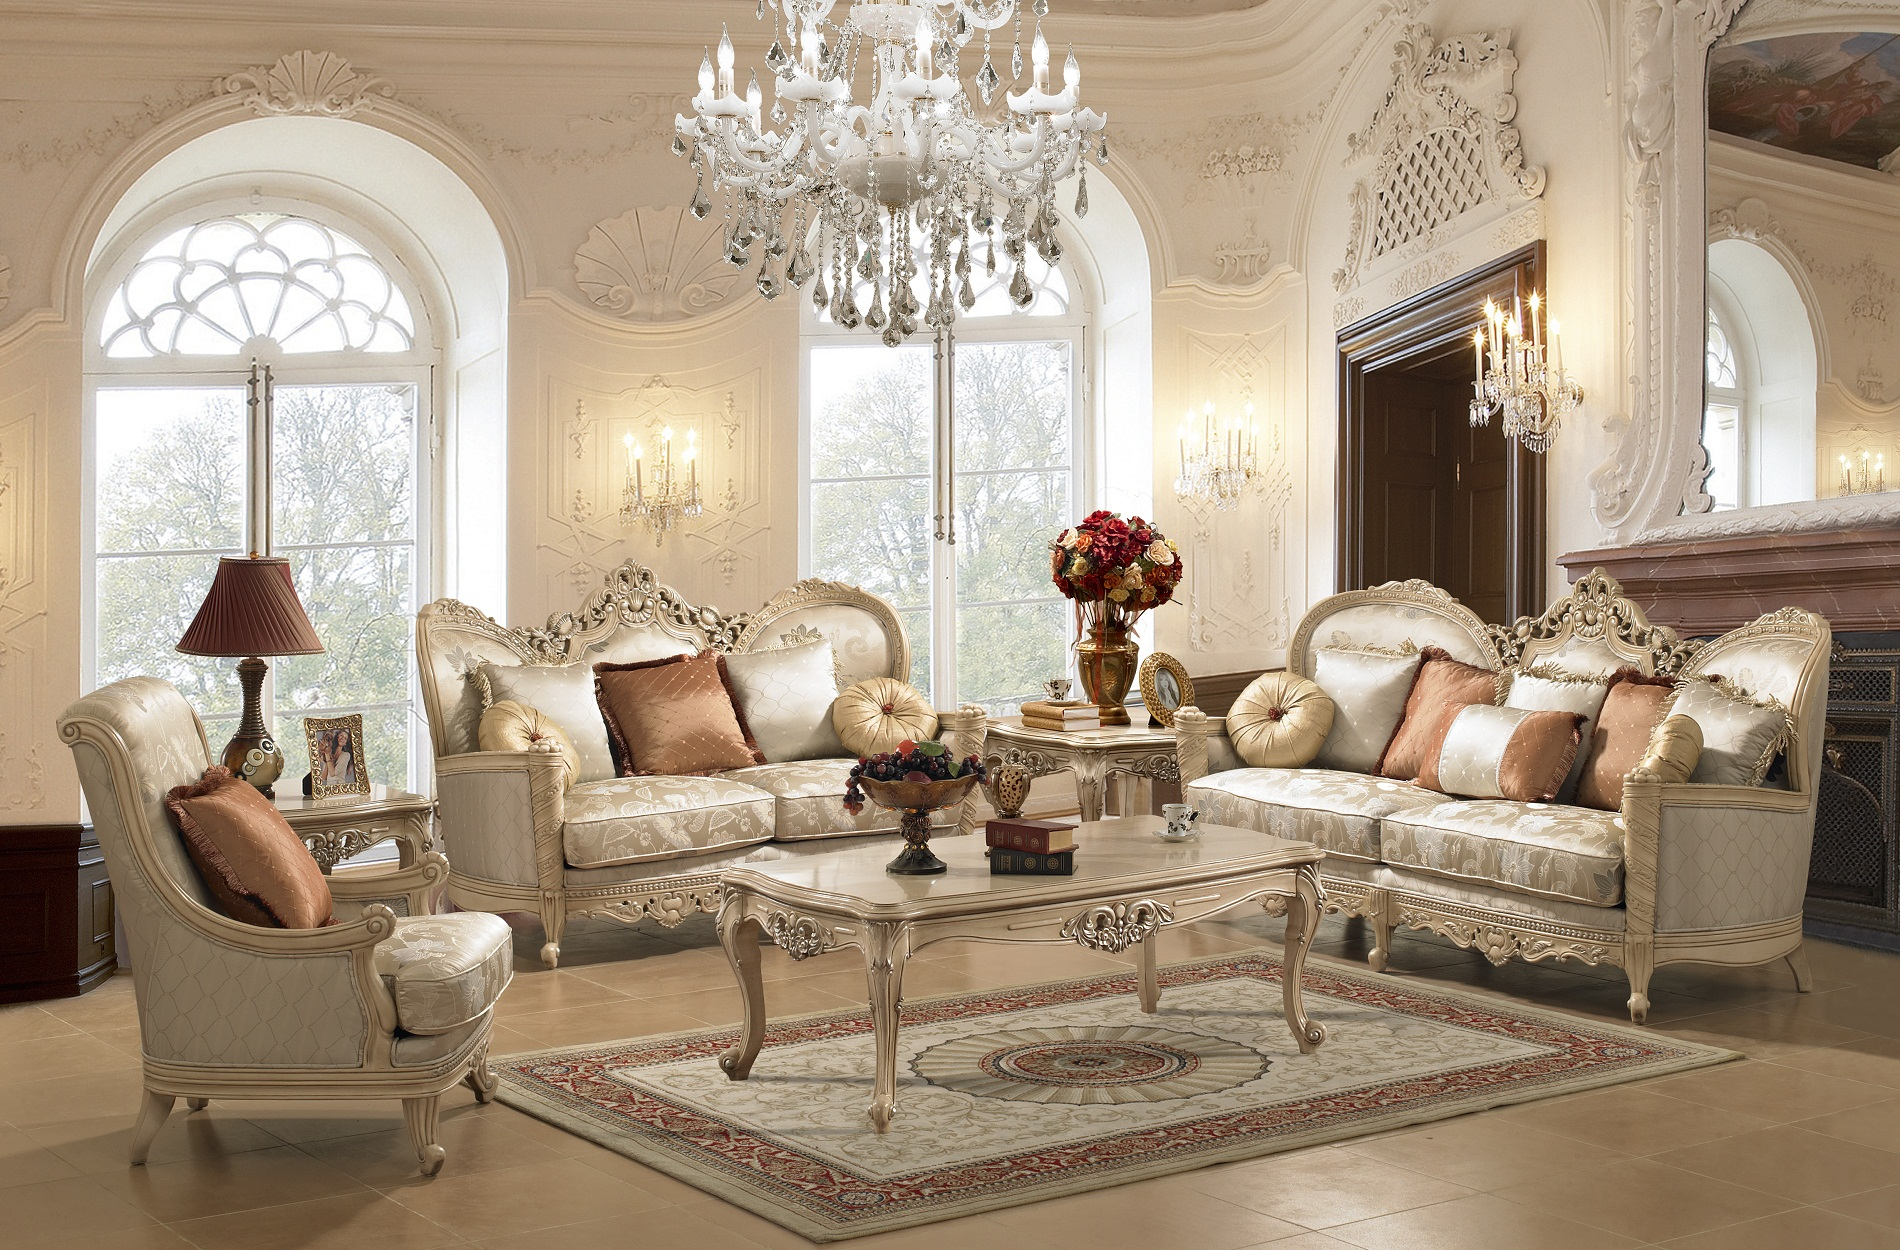 elegant furniture brescia elegant living room set WNIZGZX